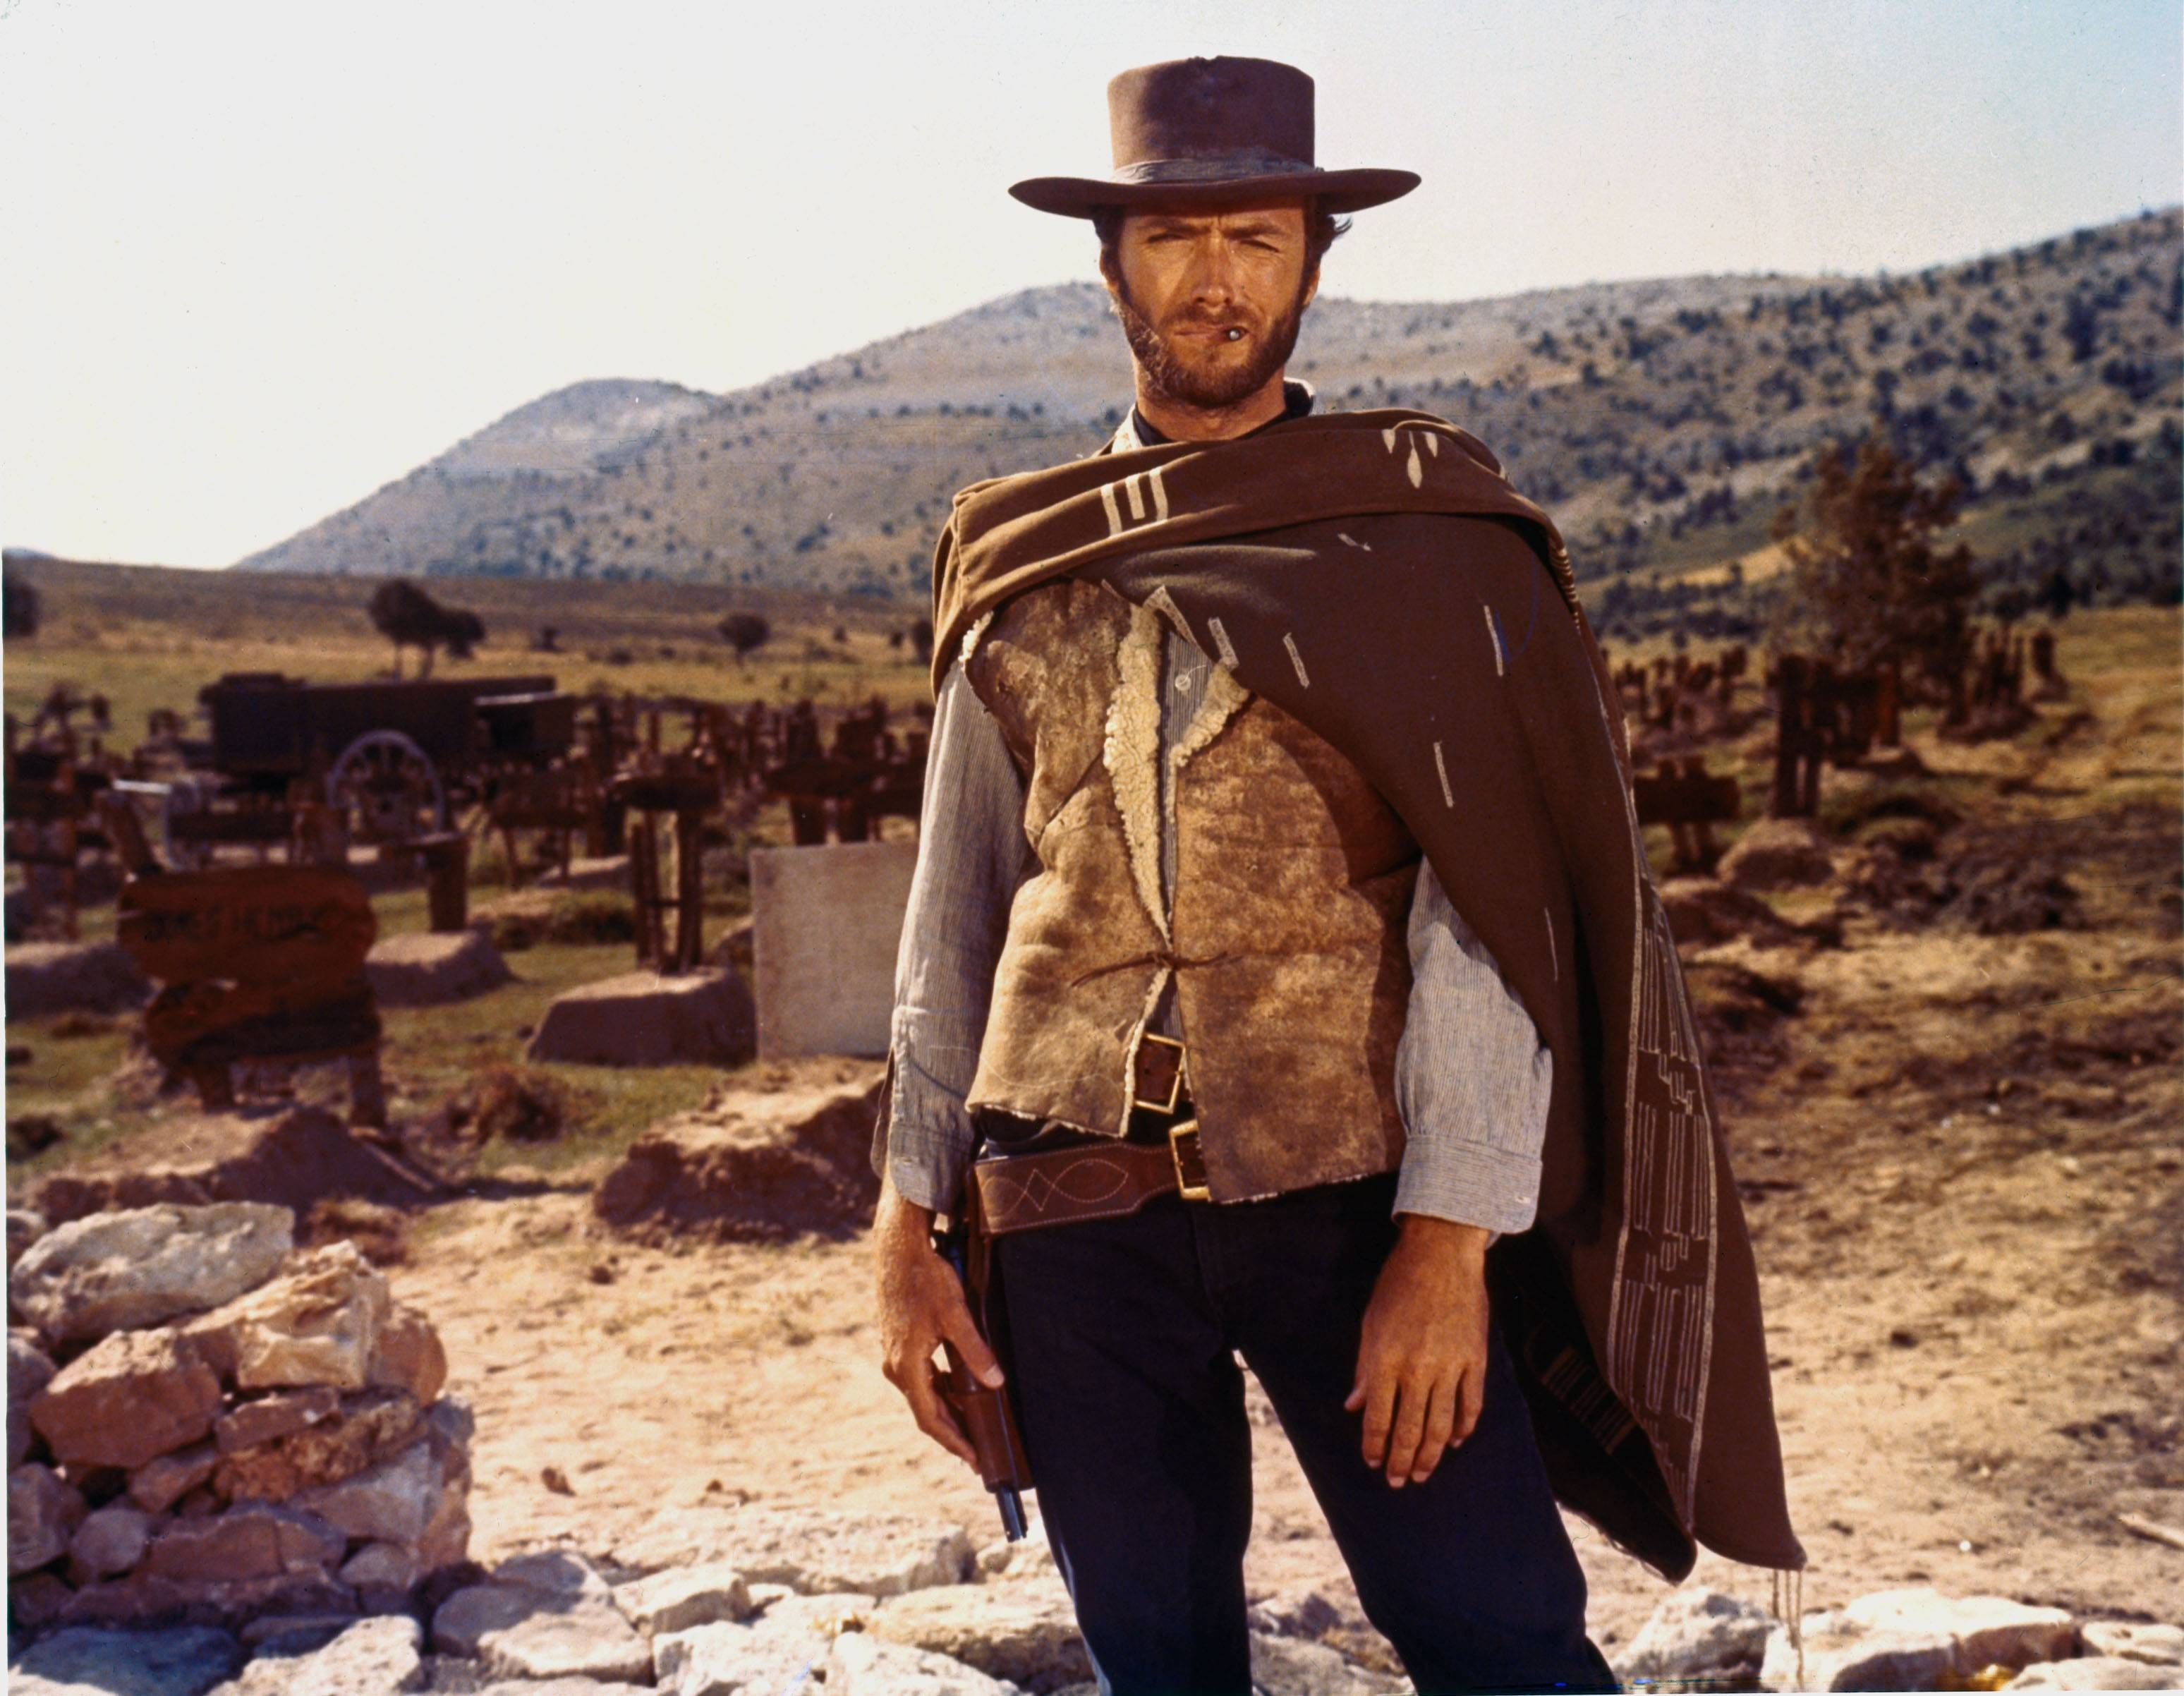 Clint Eastwood in The Good the Bad and the Ugly (Sergio Leone 1966)  #films #movies #SergioLeone  #western #ClintEastwood  #60s   #HighRes #HR